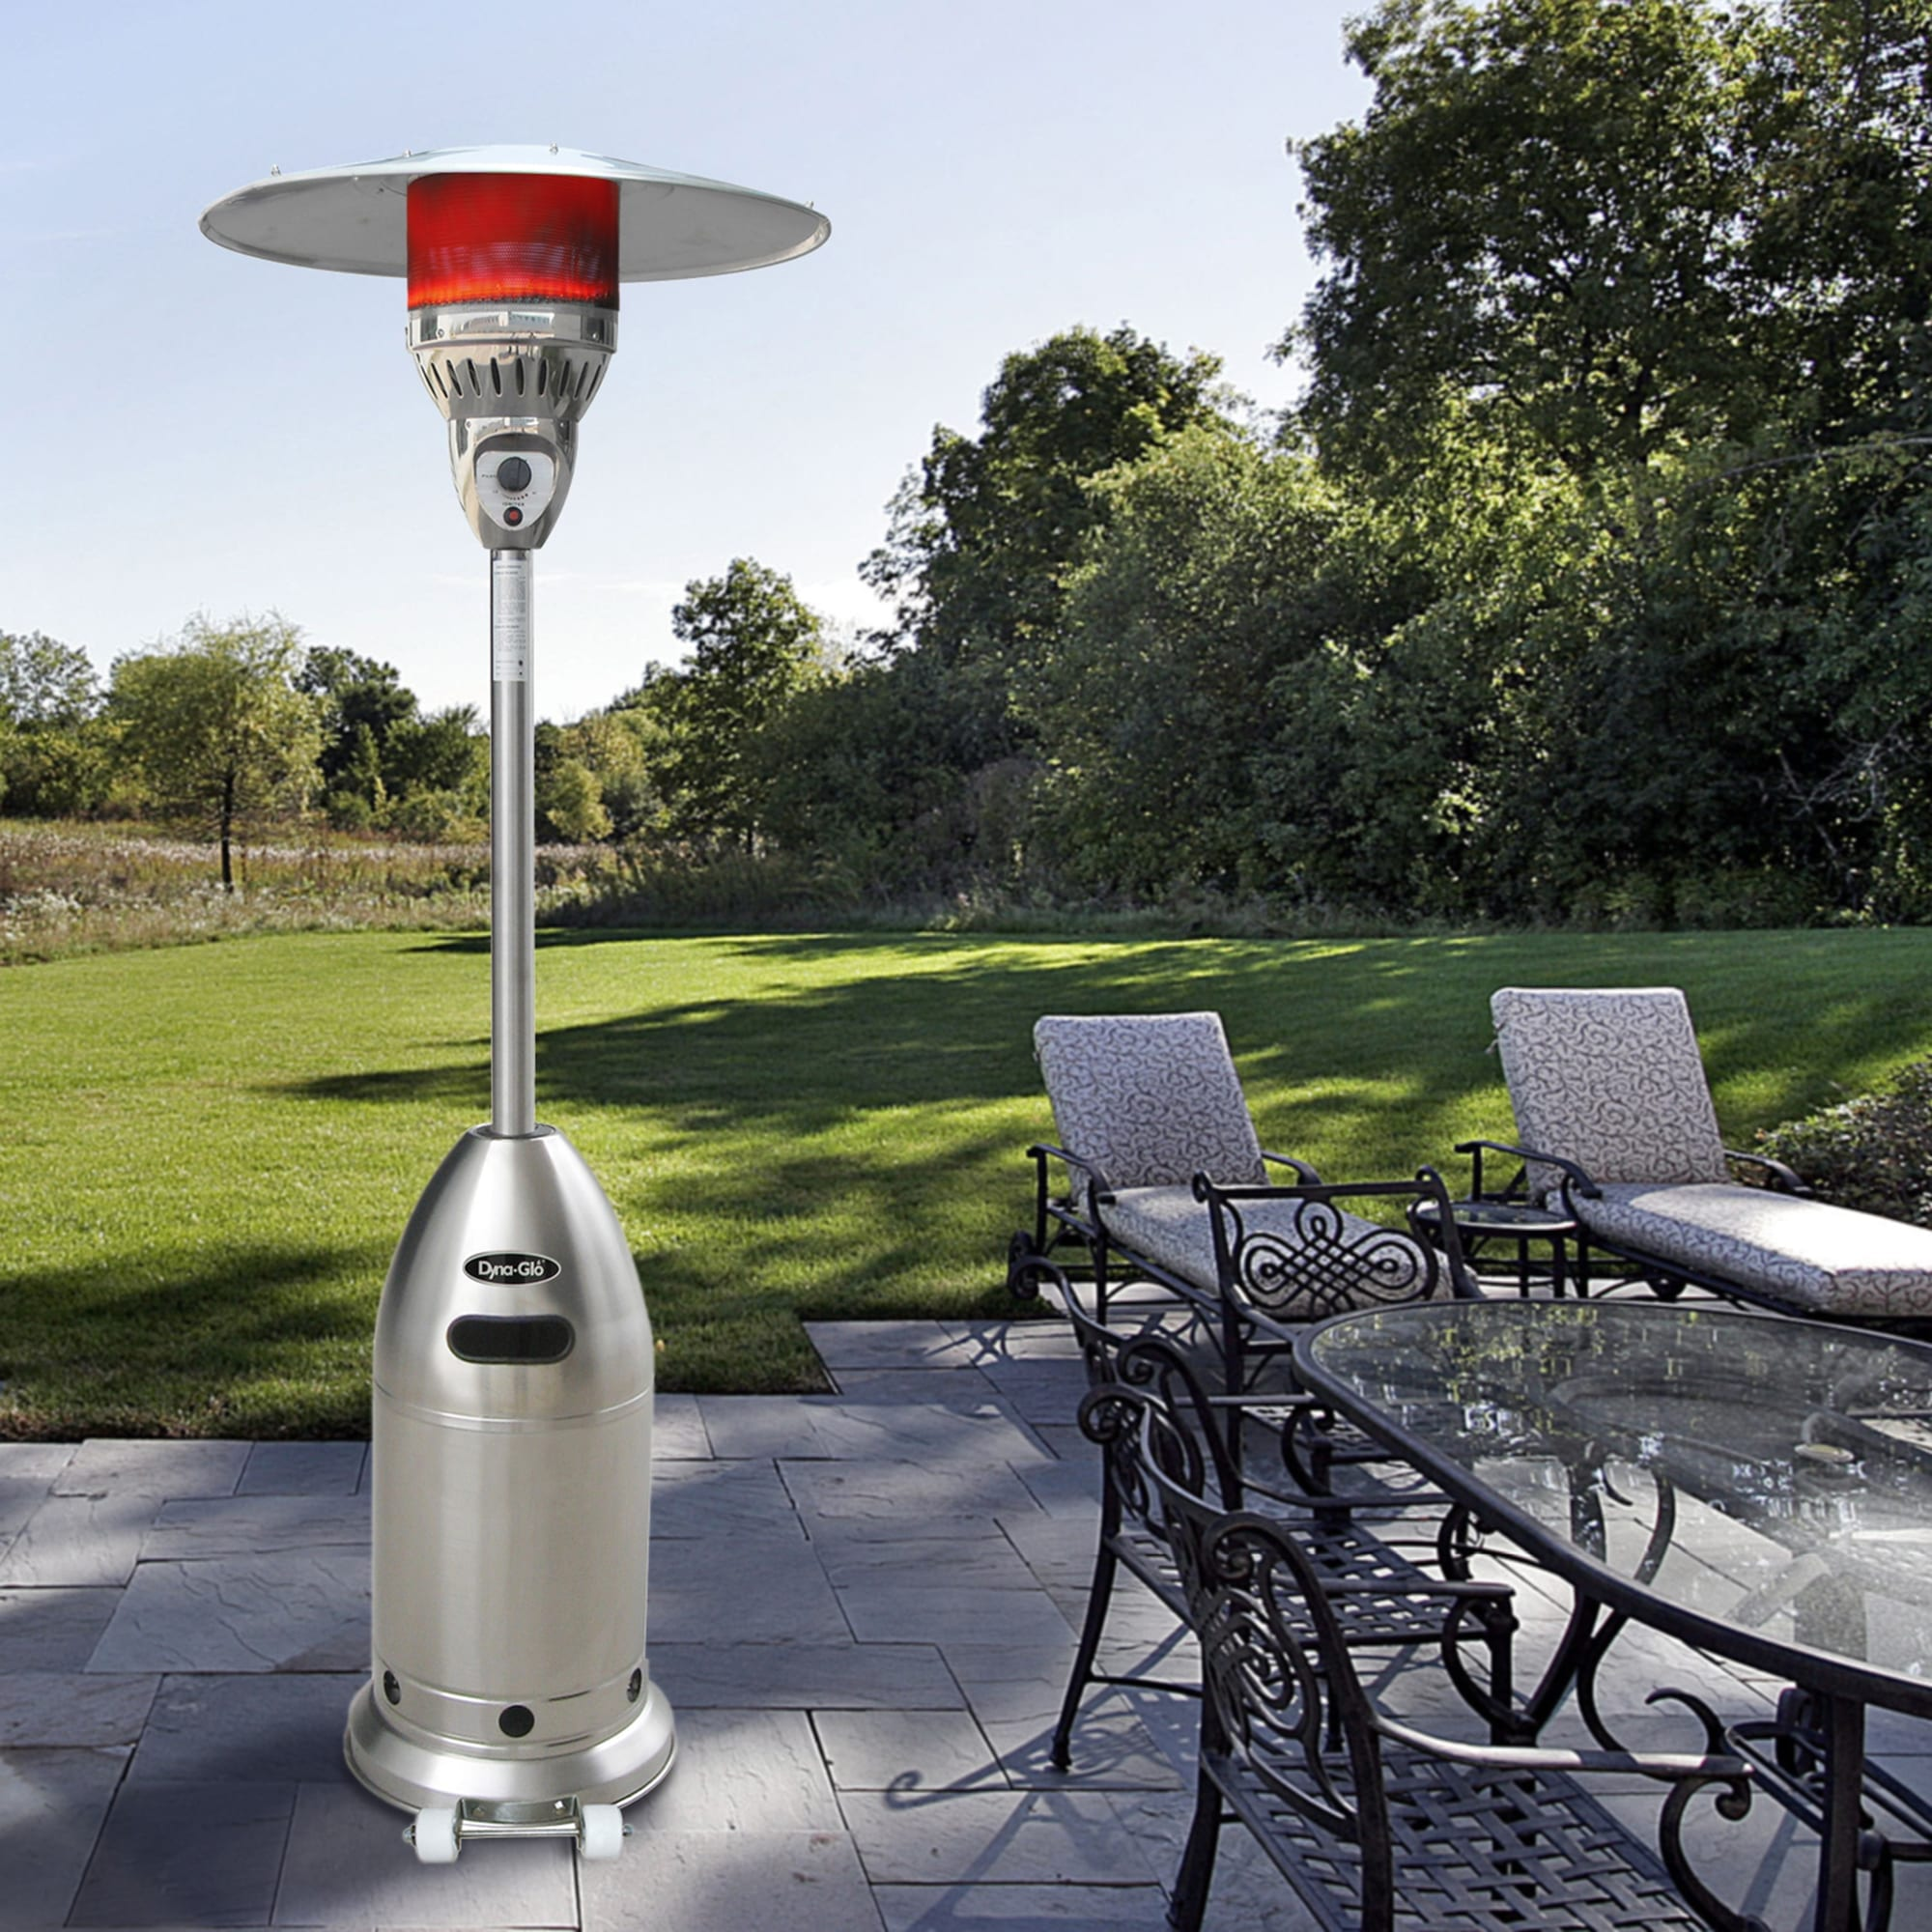 Patio Heater Repair Near Me